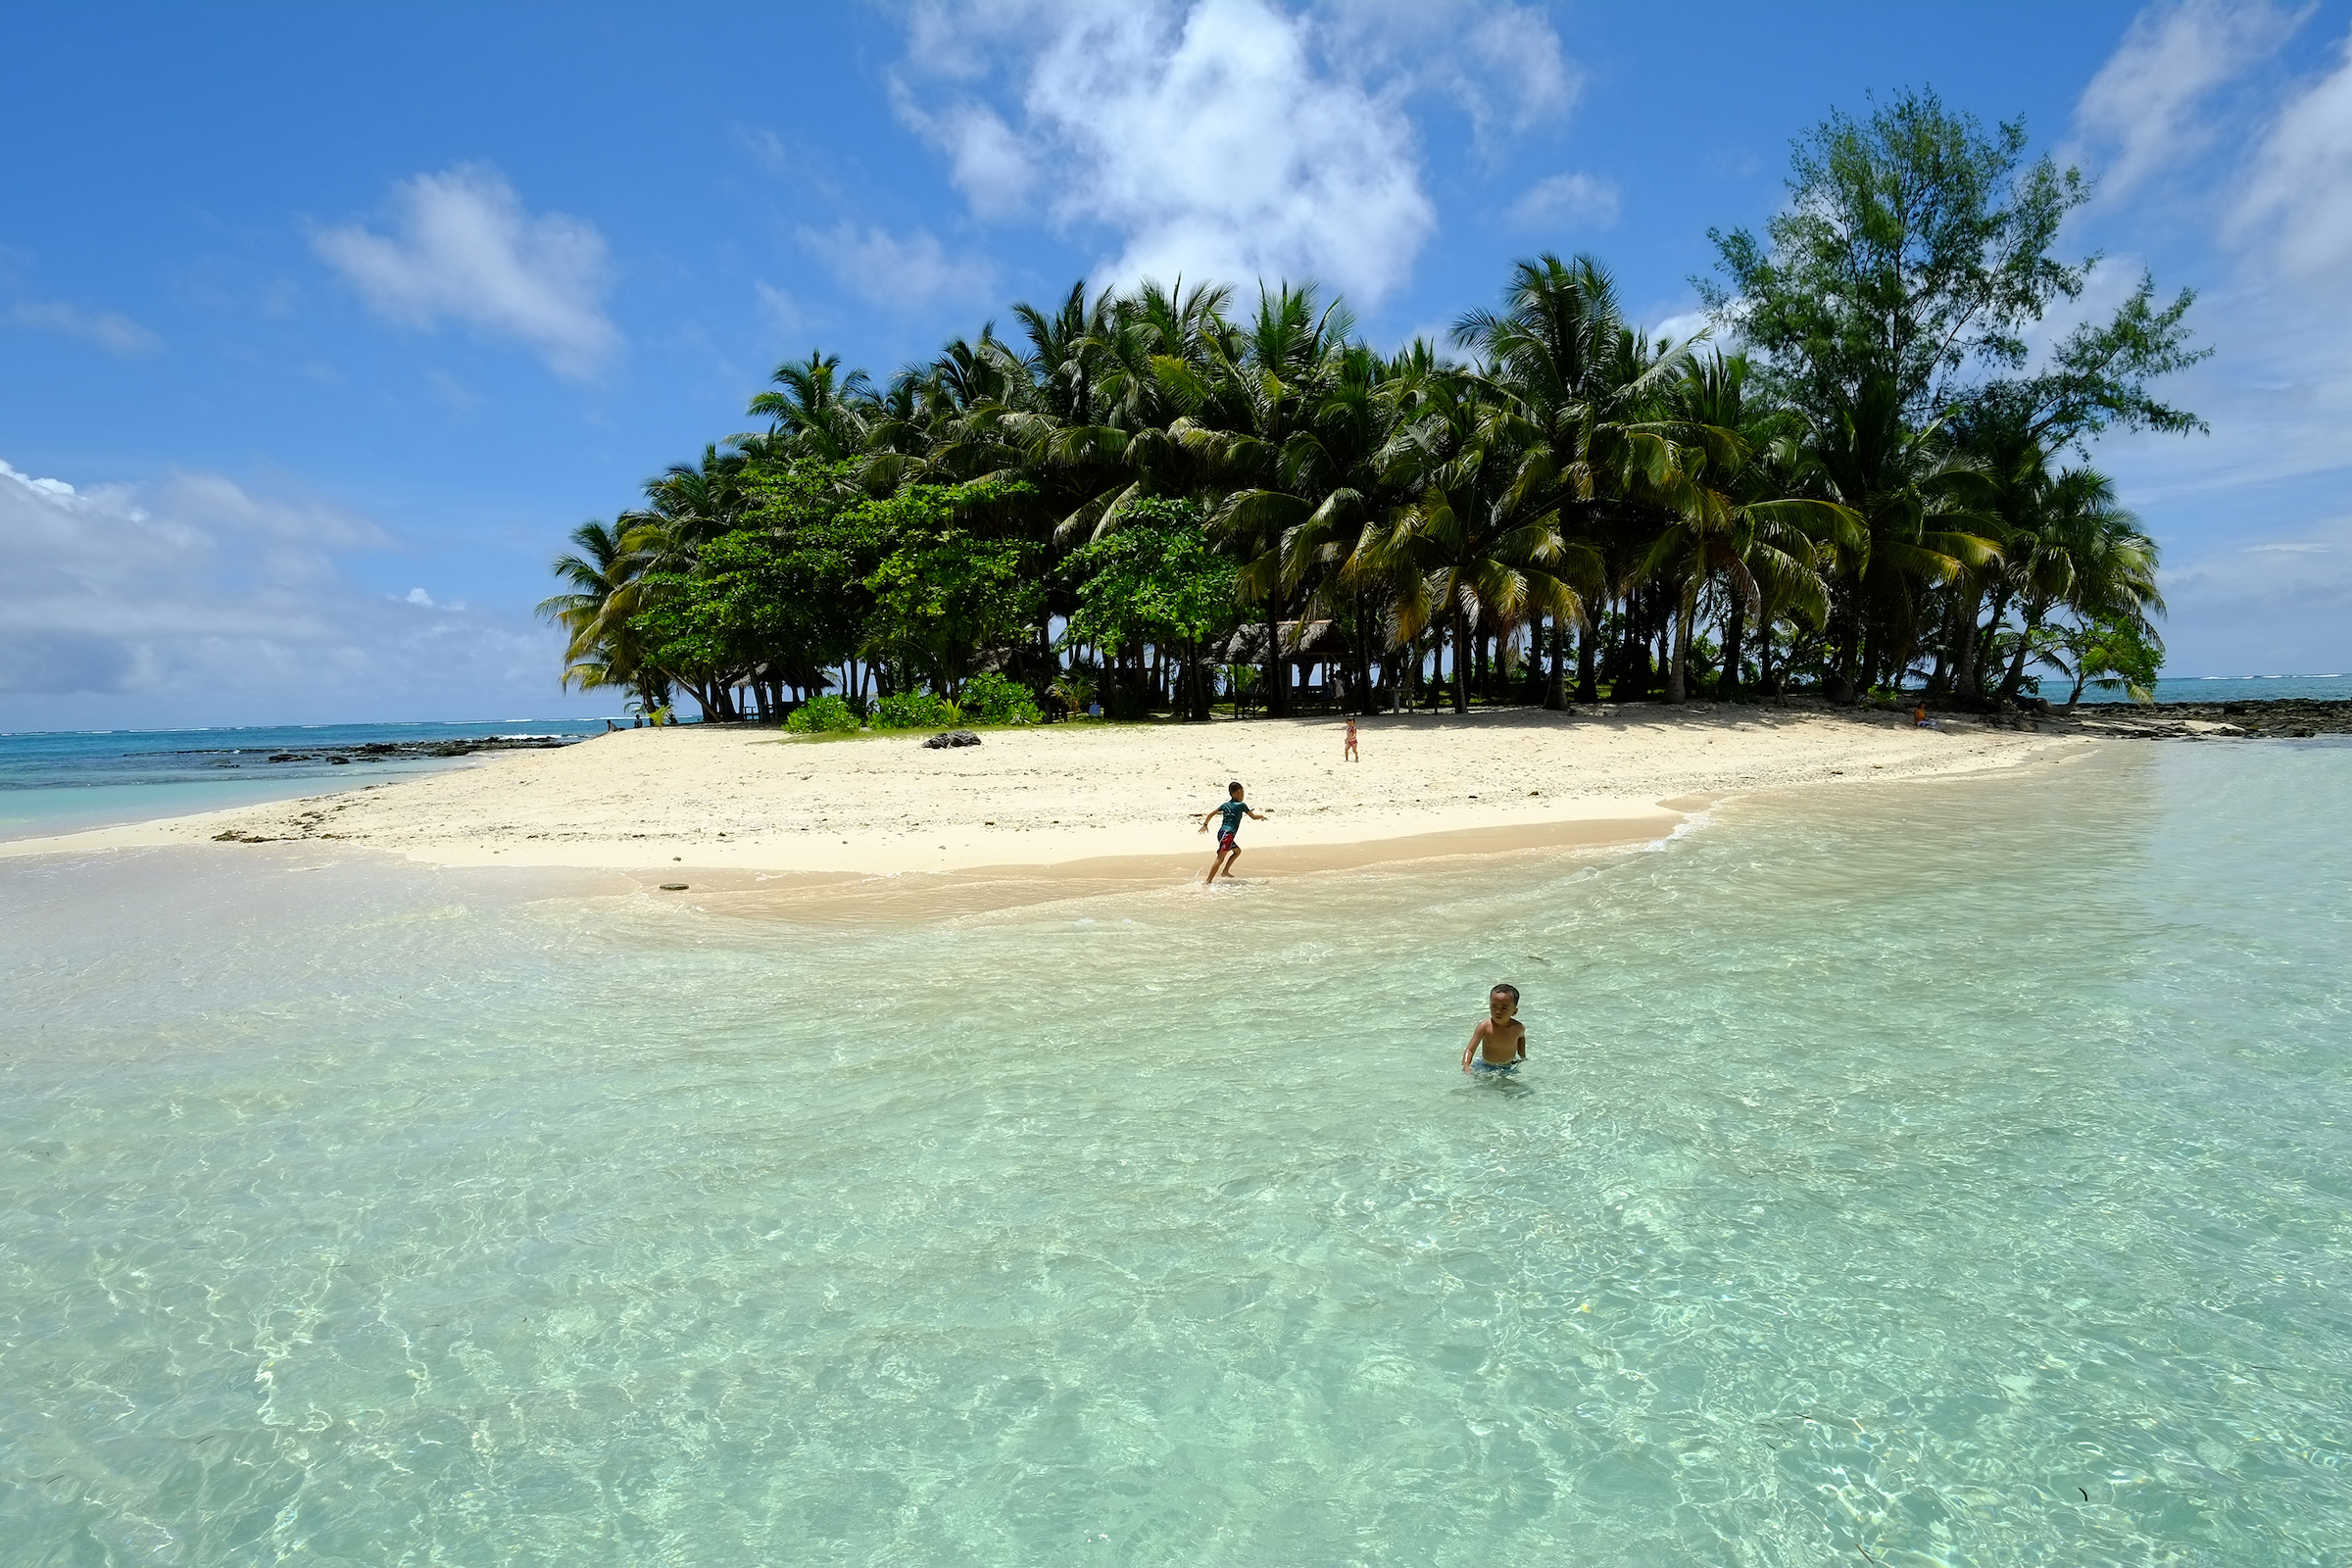 Siargao Island Hopping and Sohoton Cove Day Tour with Transfers